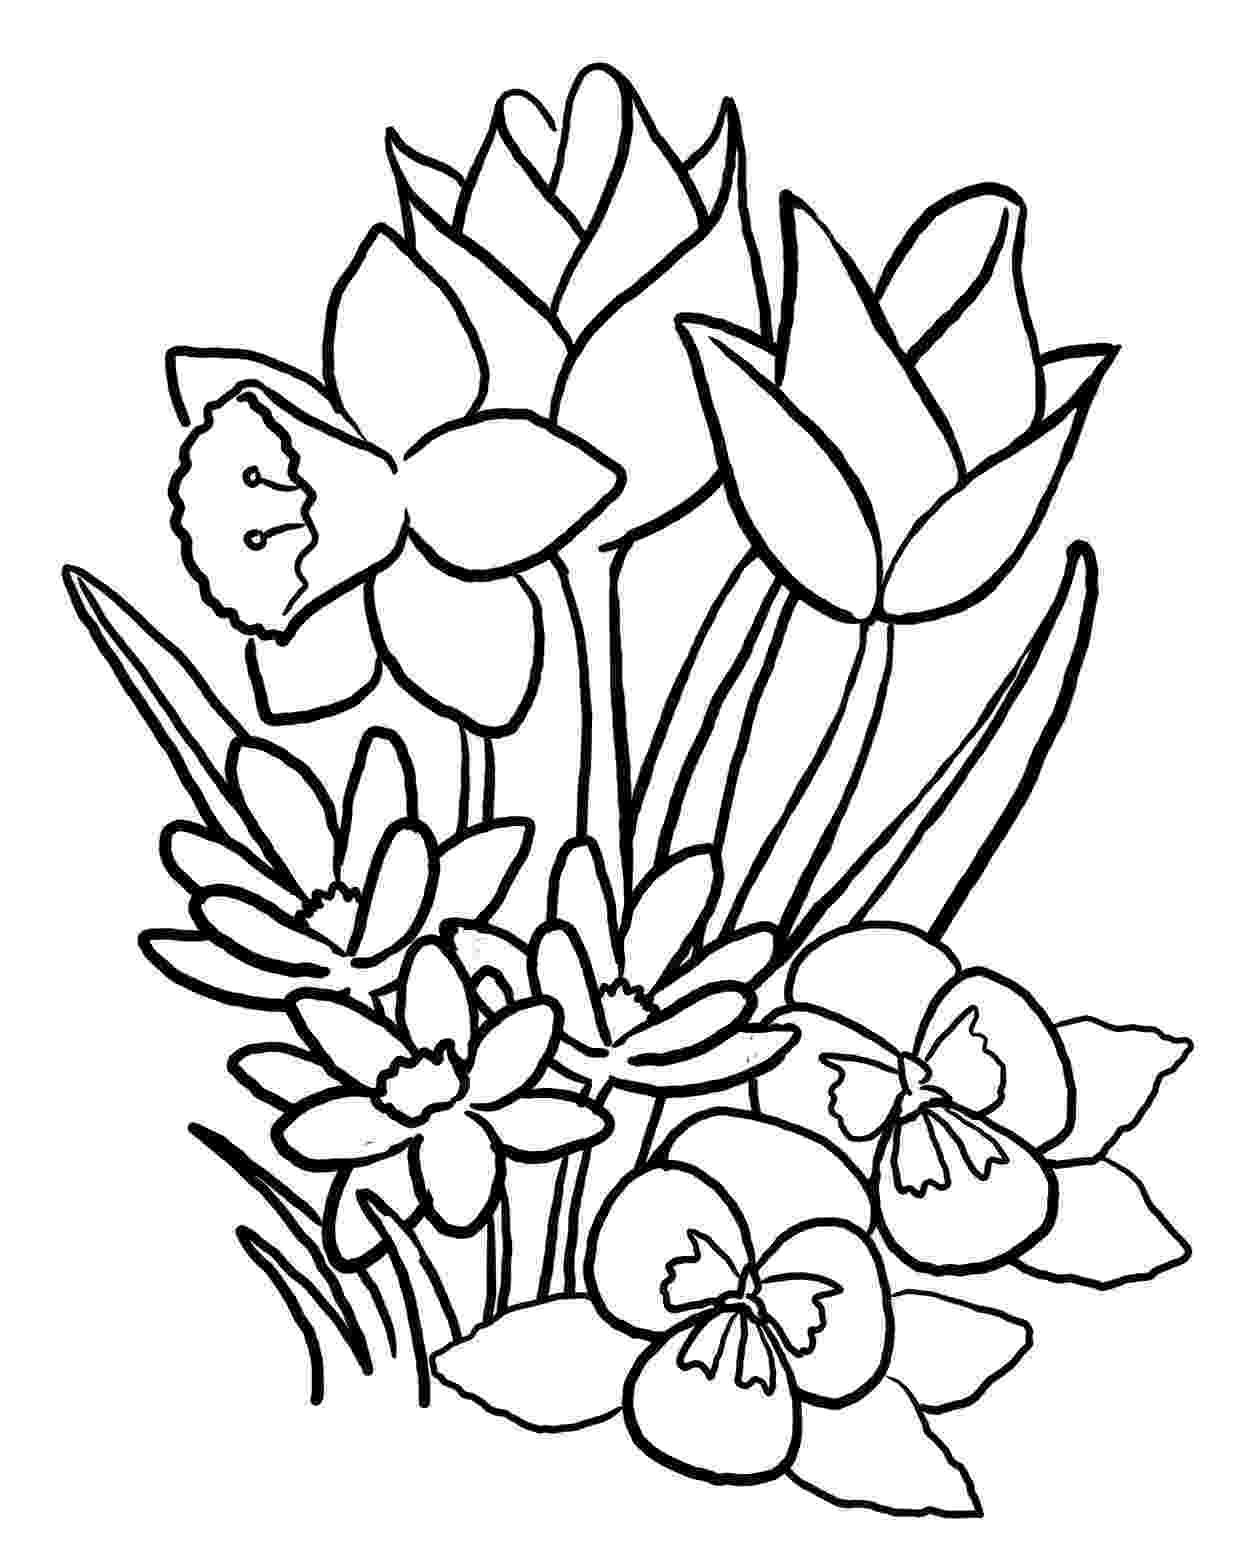 free coloring pictures of flowers spring flower coloring pages to download and print for free flowers pictures of free coloring